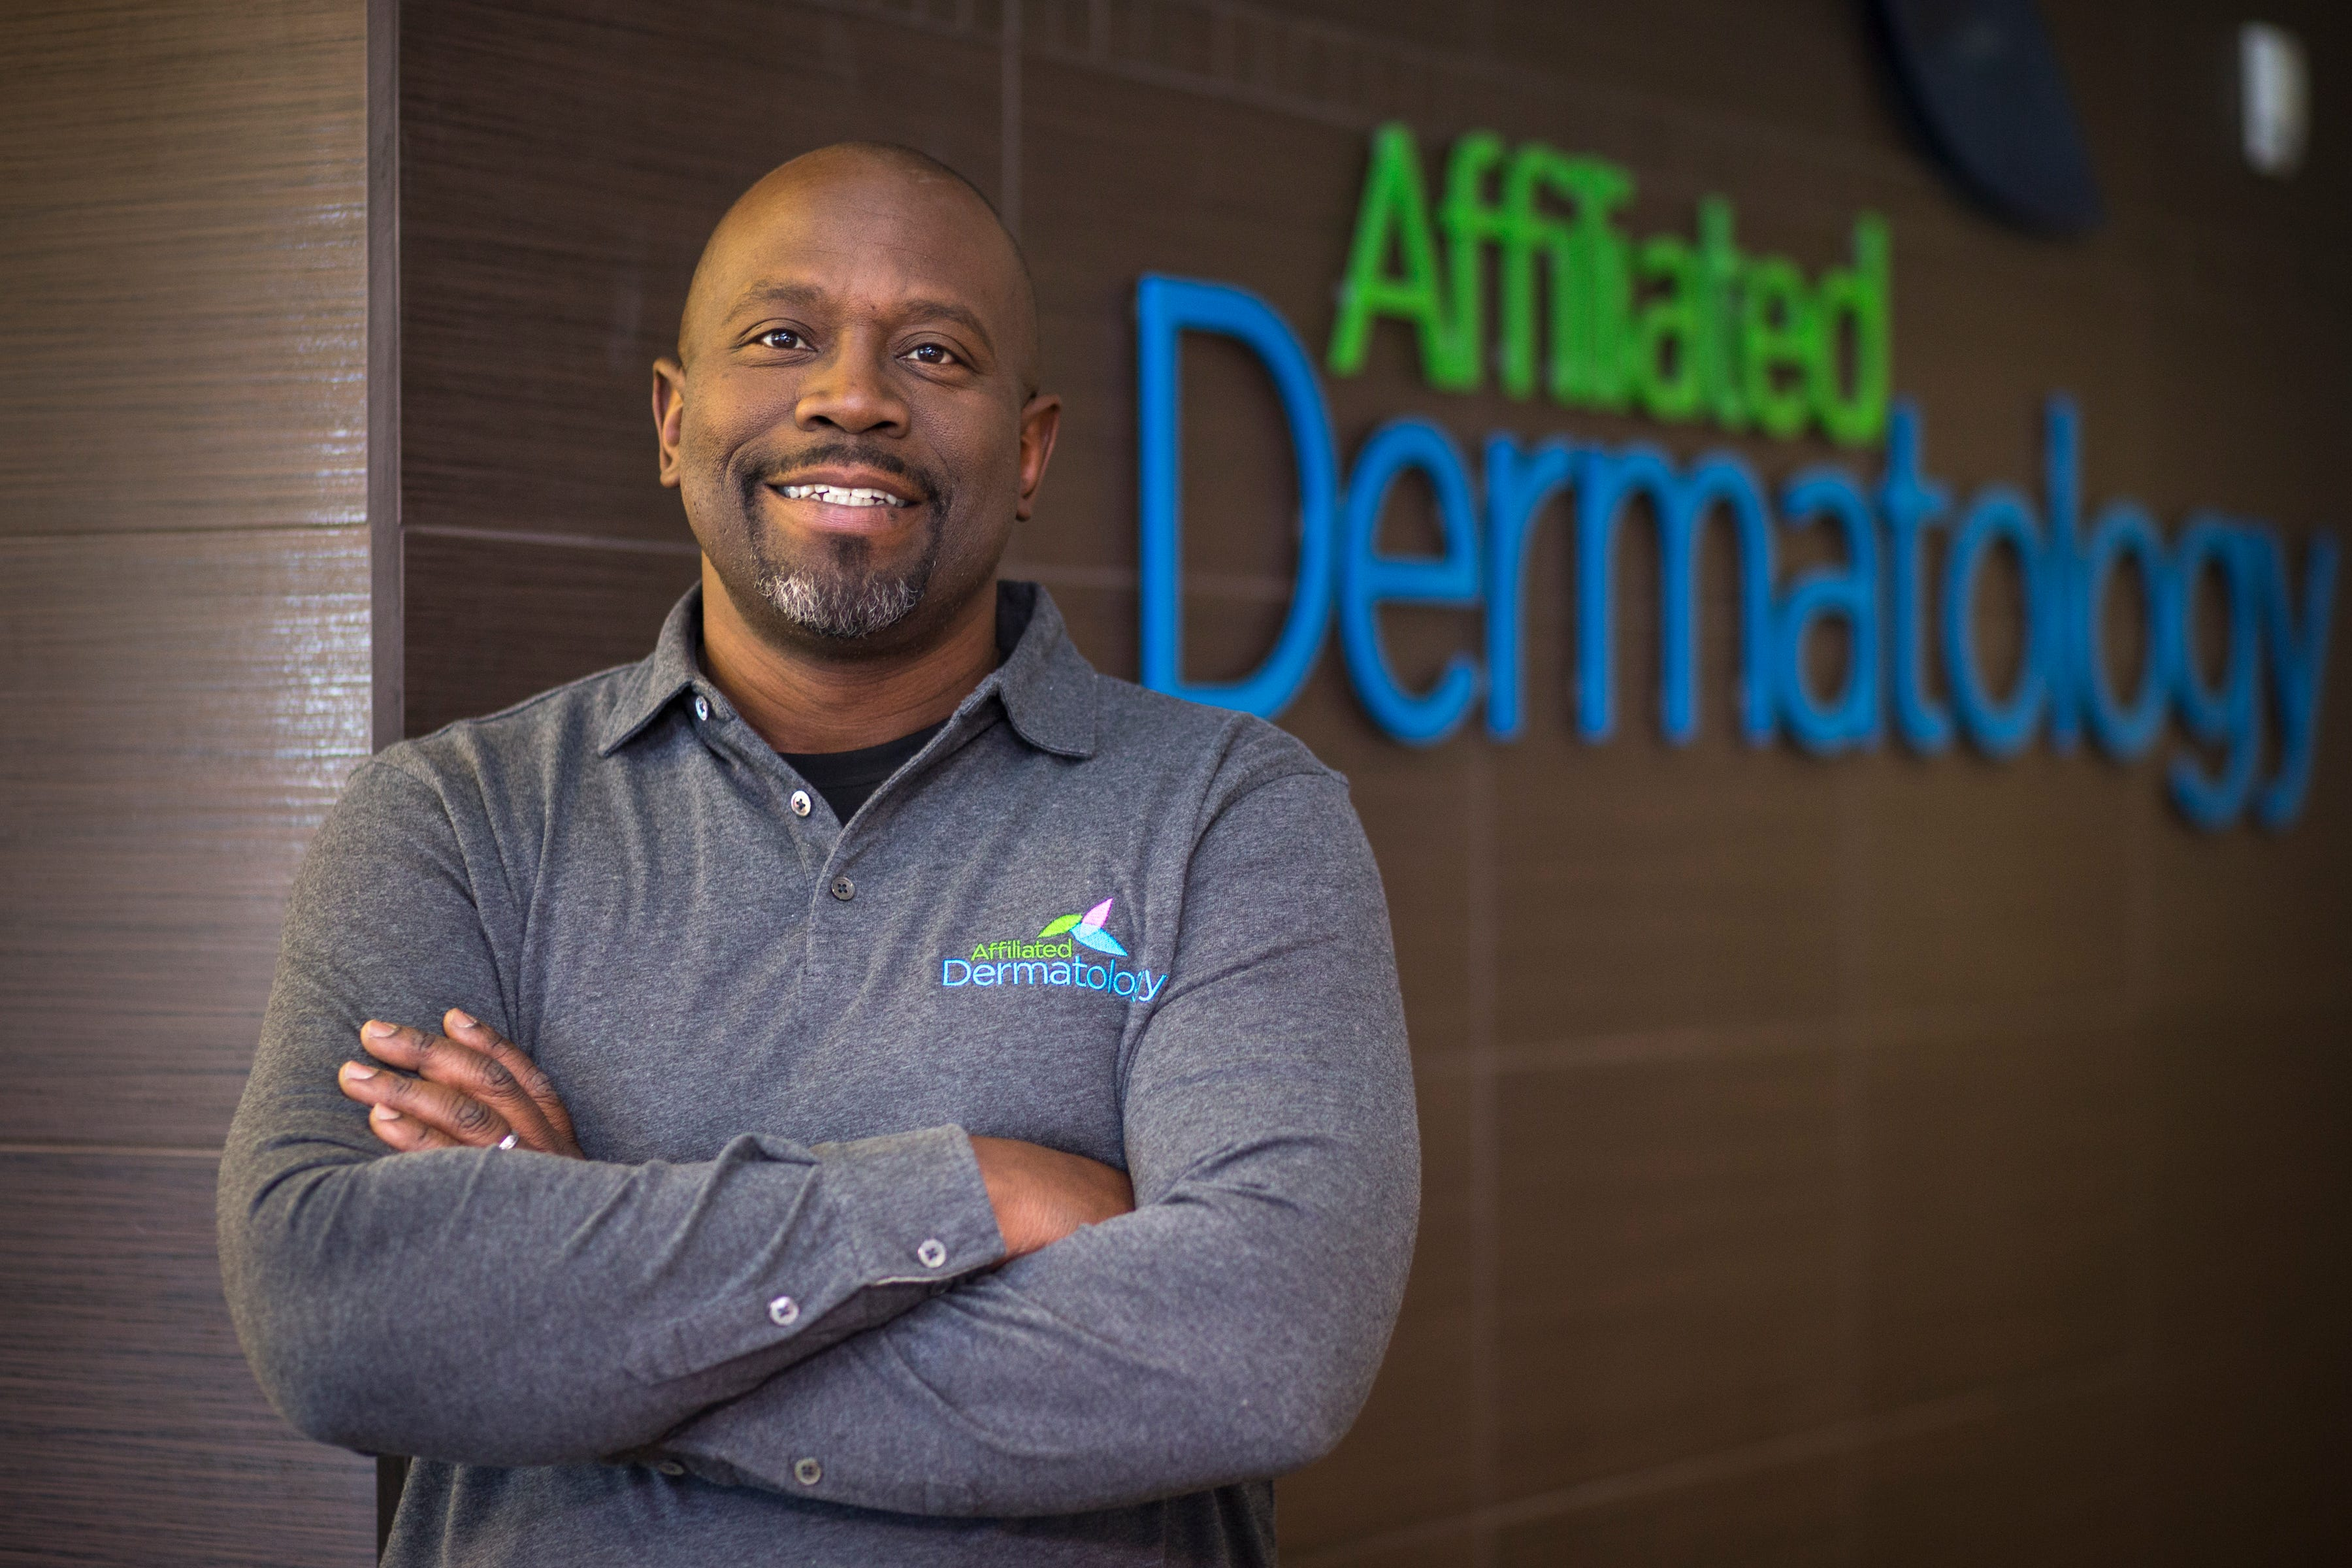 Addressing skin cancer demand while keeping care local keeps Affiliated Dermatology growing | Arizona Central